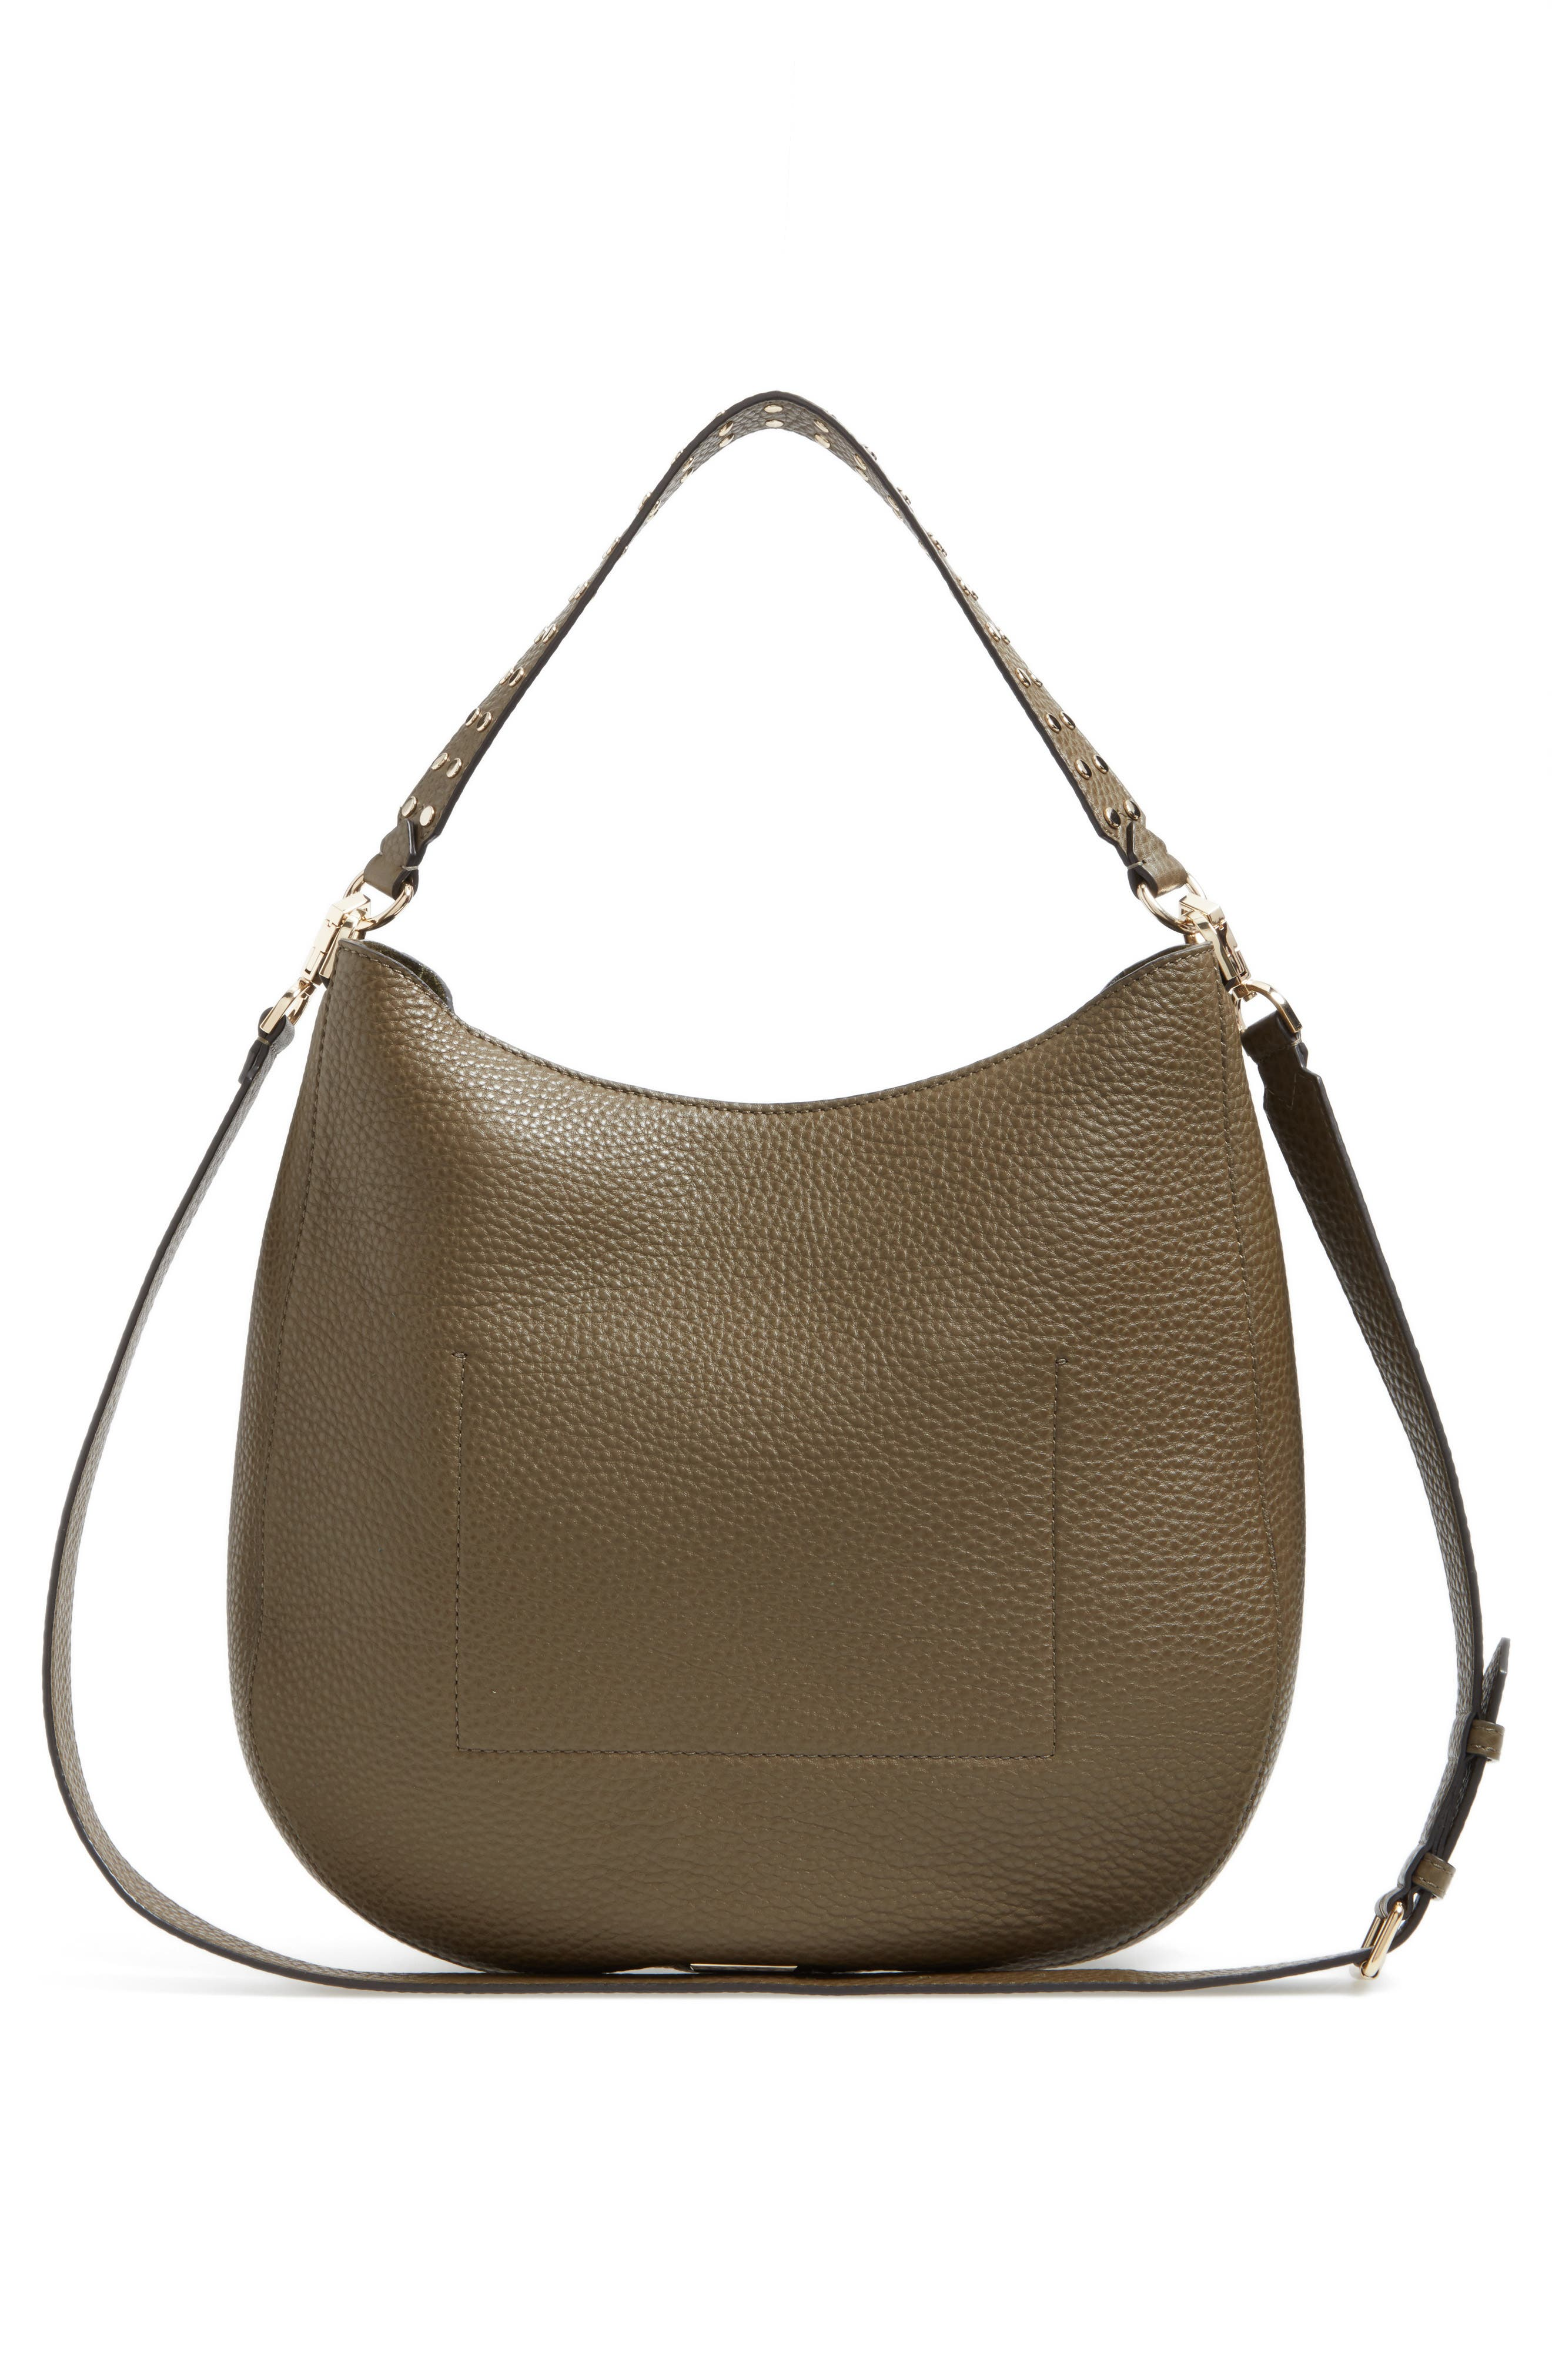 Alternate Image 3  - Rebecca Minkoff Unlined Convertible Leather Hobo (Nordstrom Exclusive)